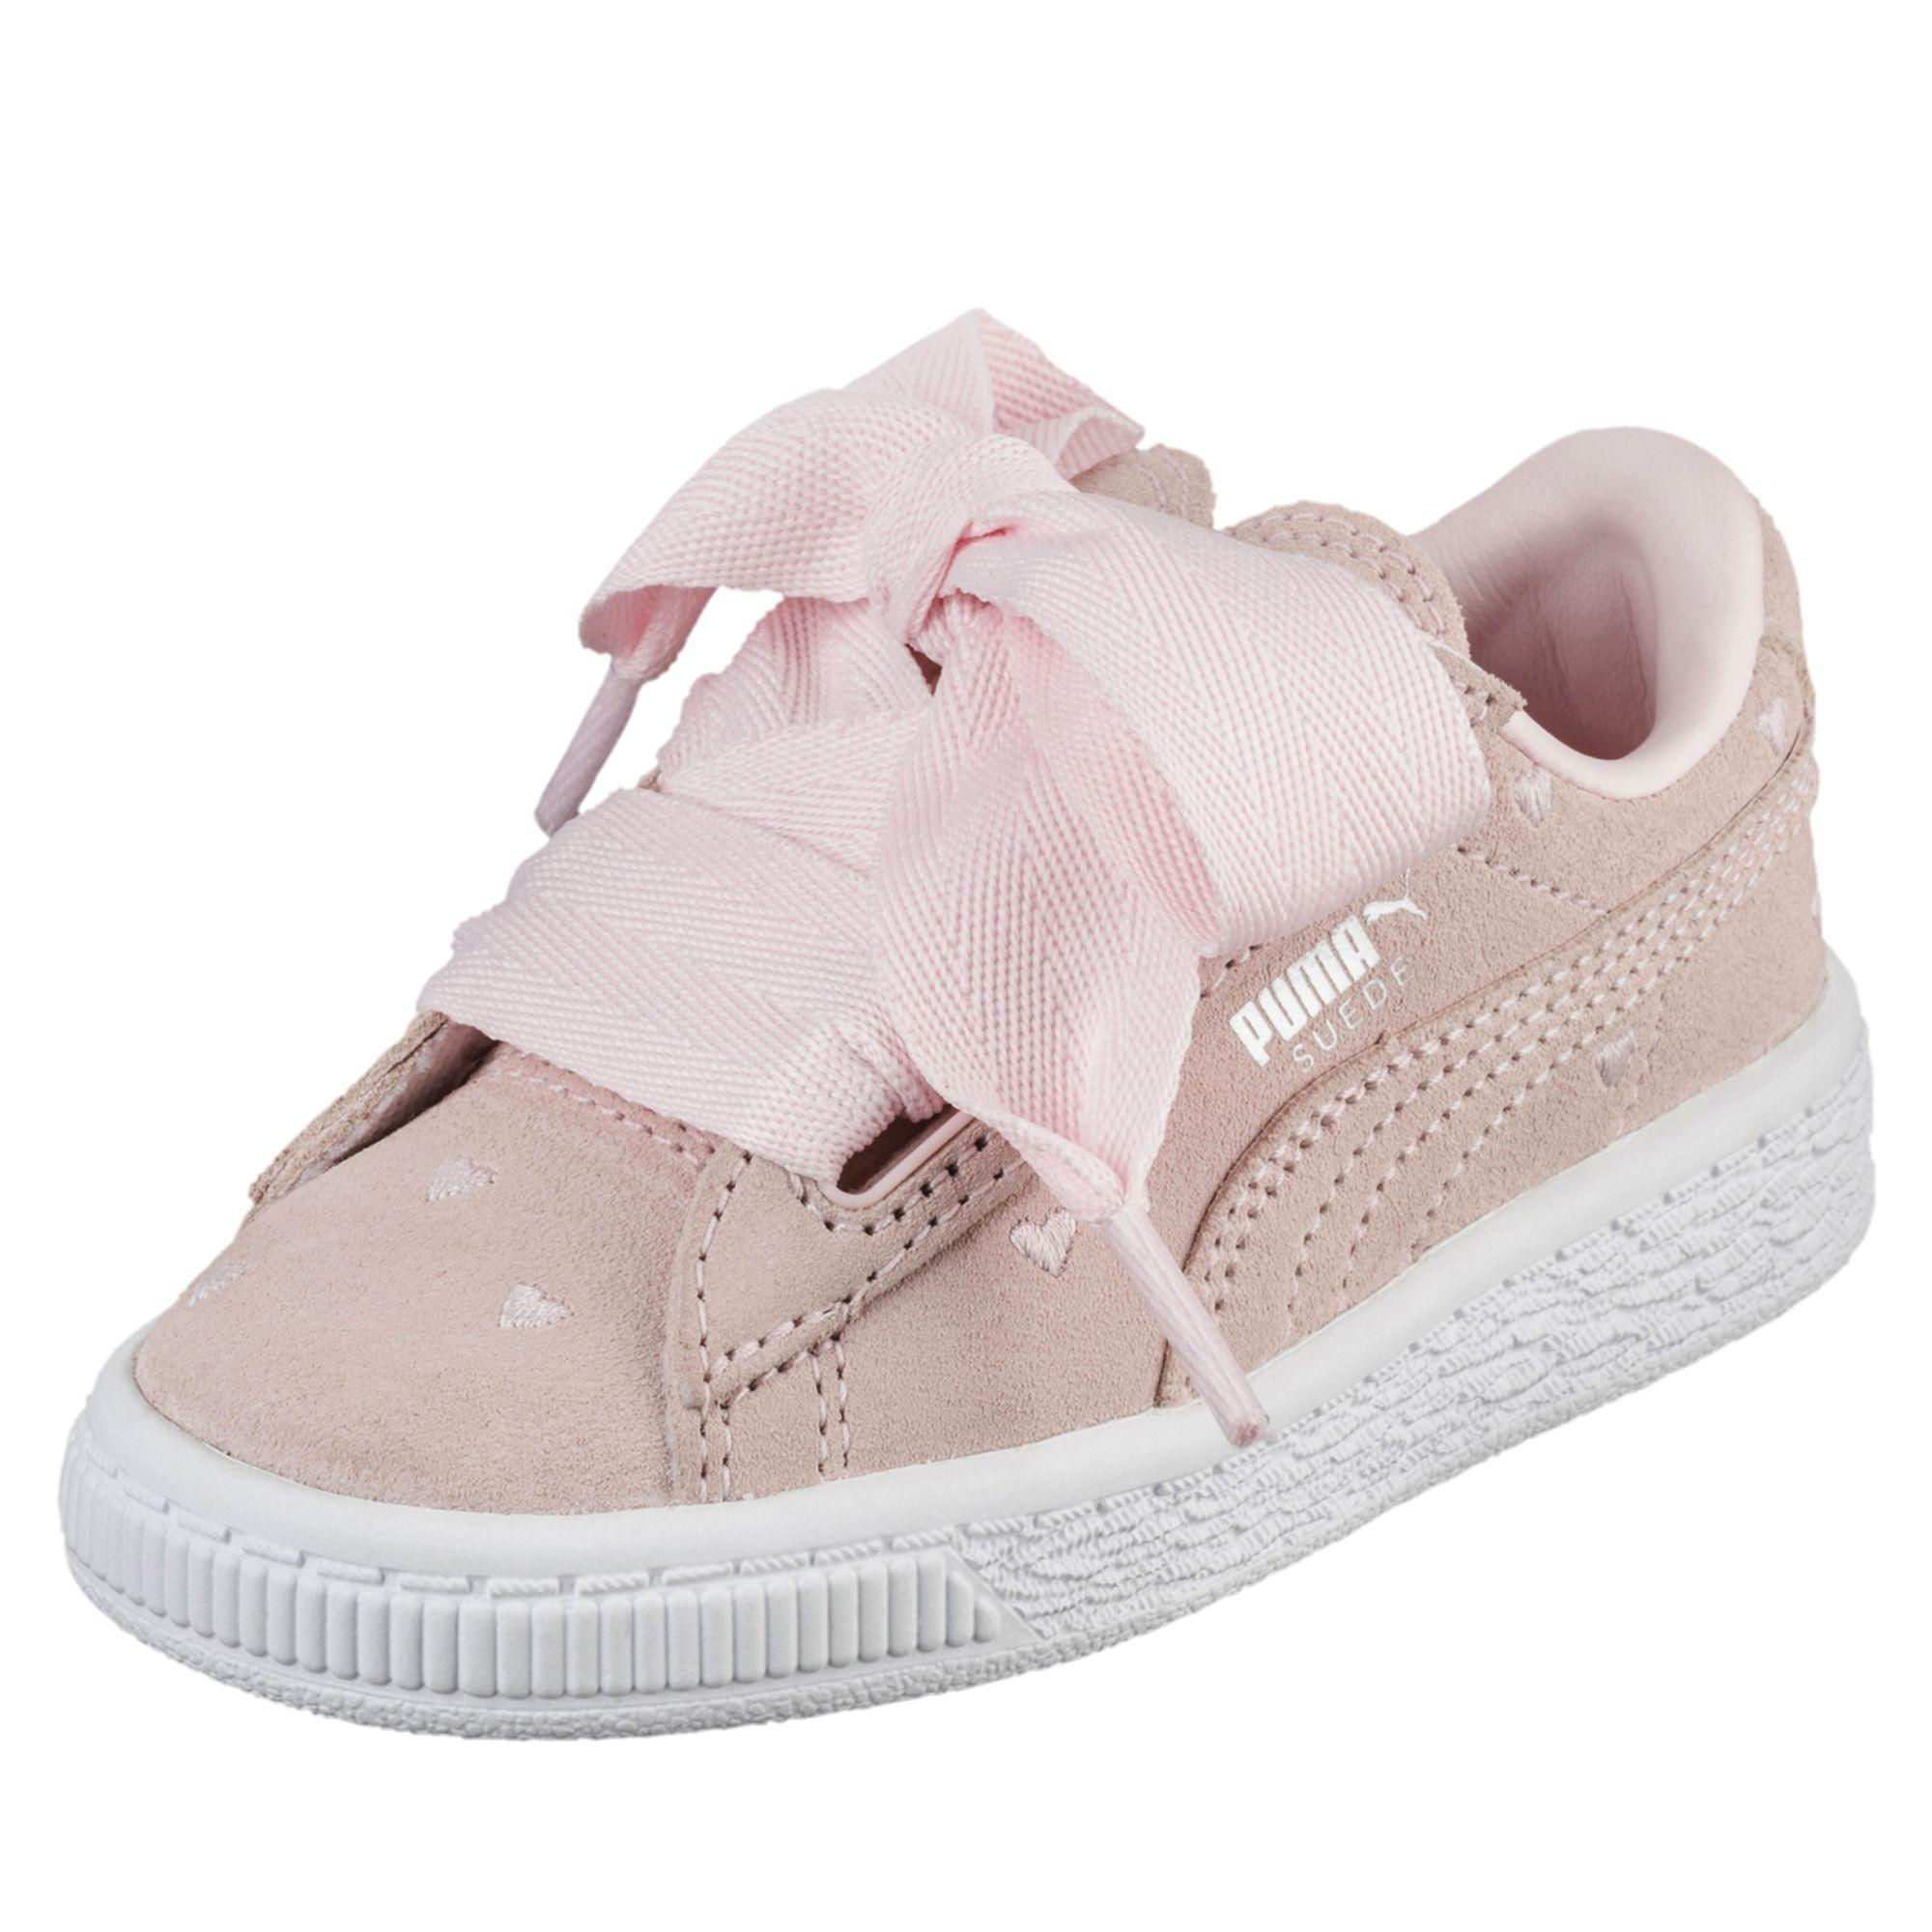 low priced 144d7 3a112 Puma Shoes Suede Heart Valentine PS Junior